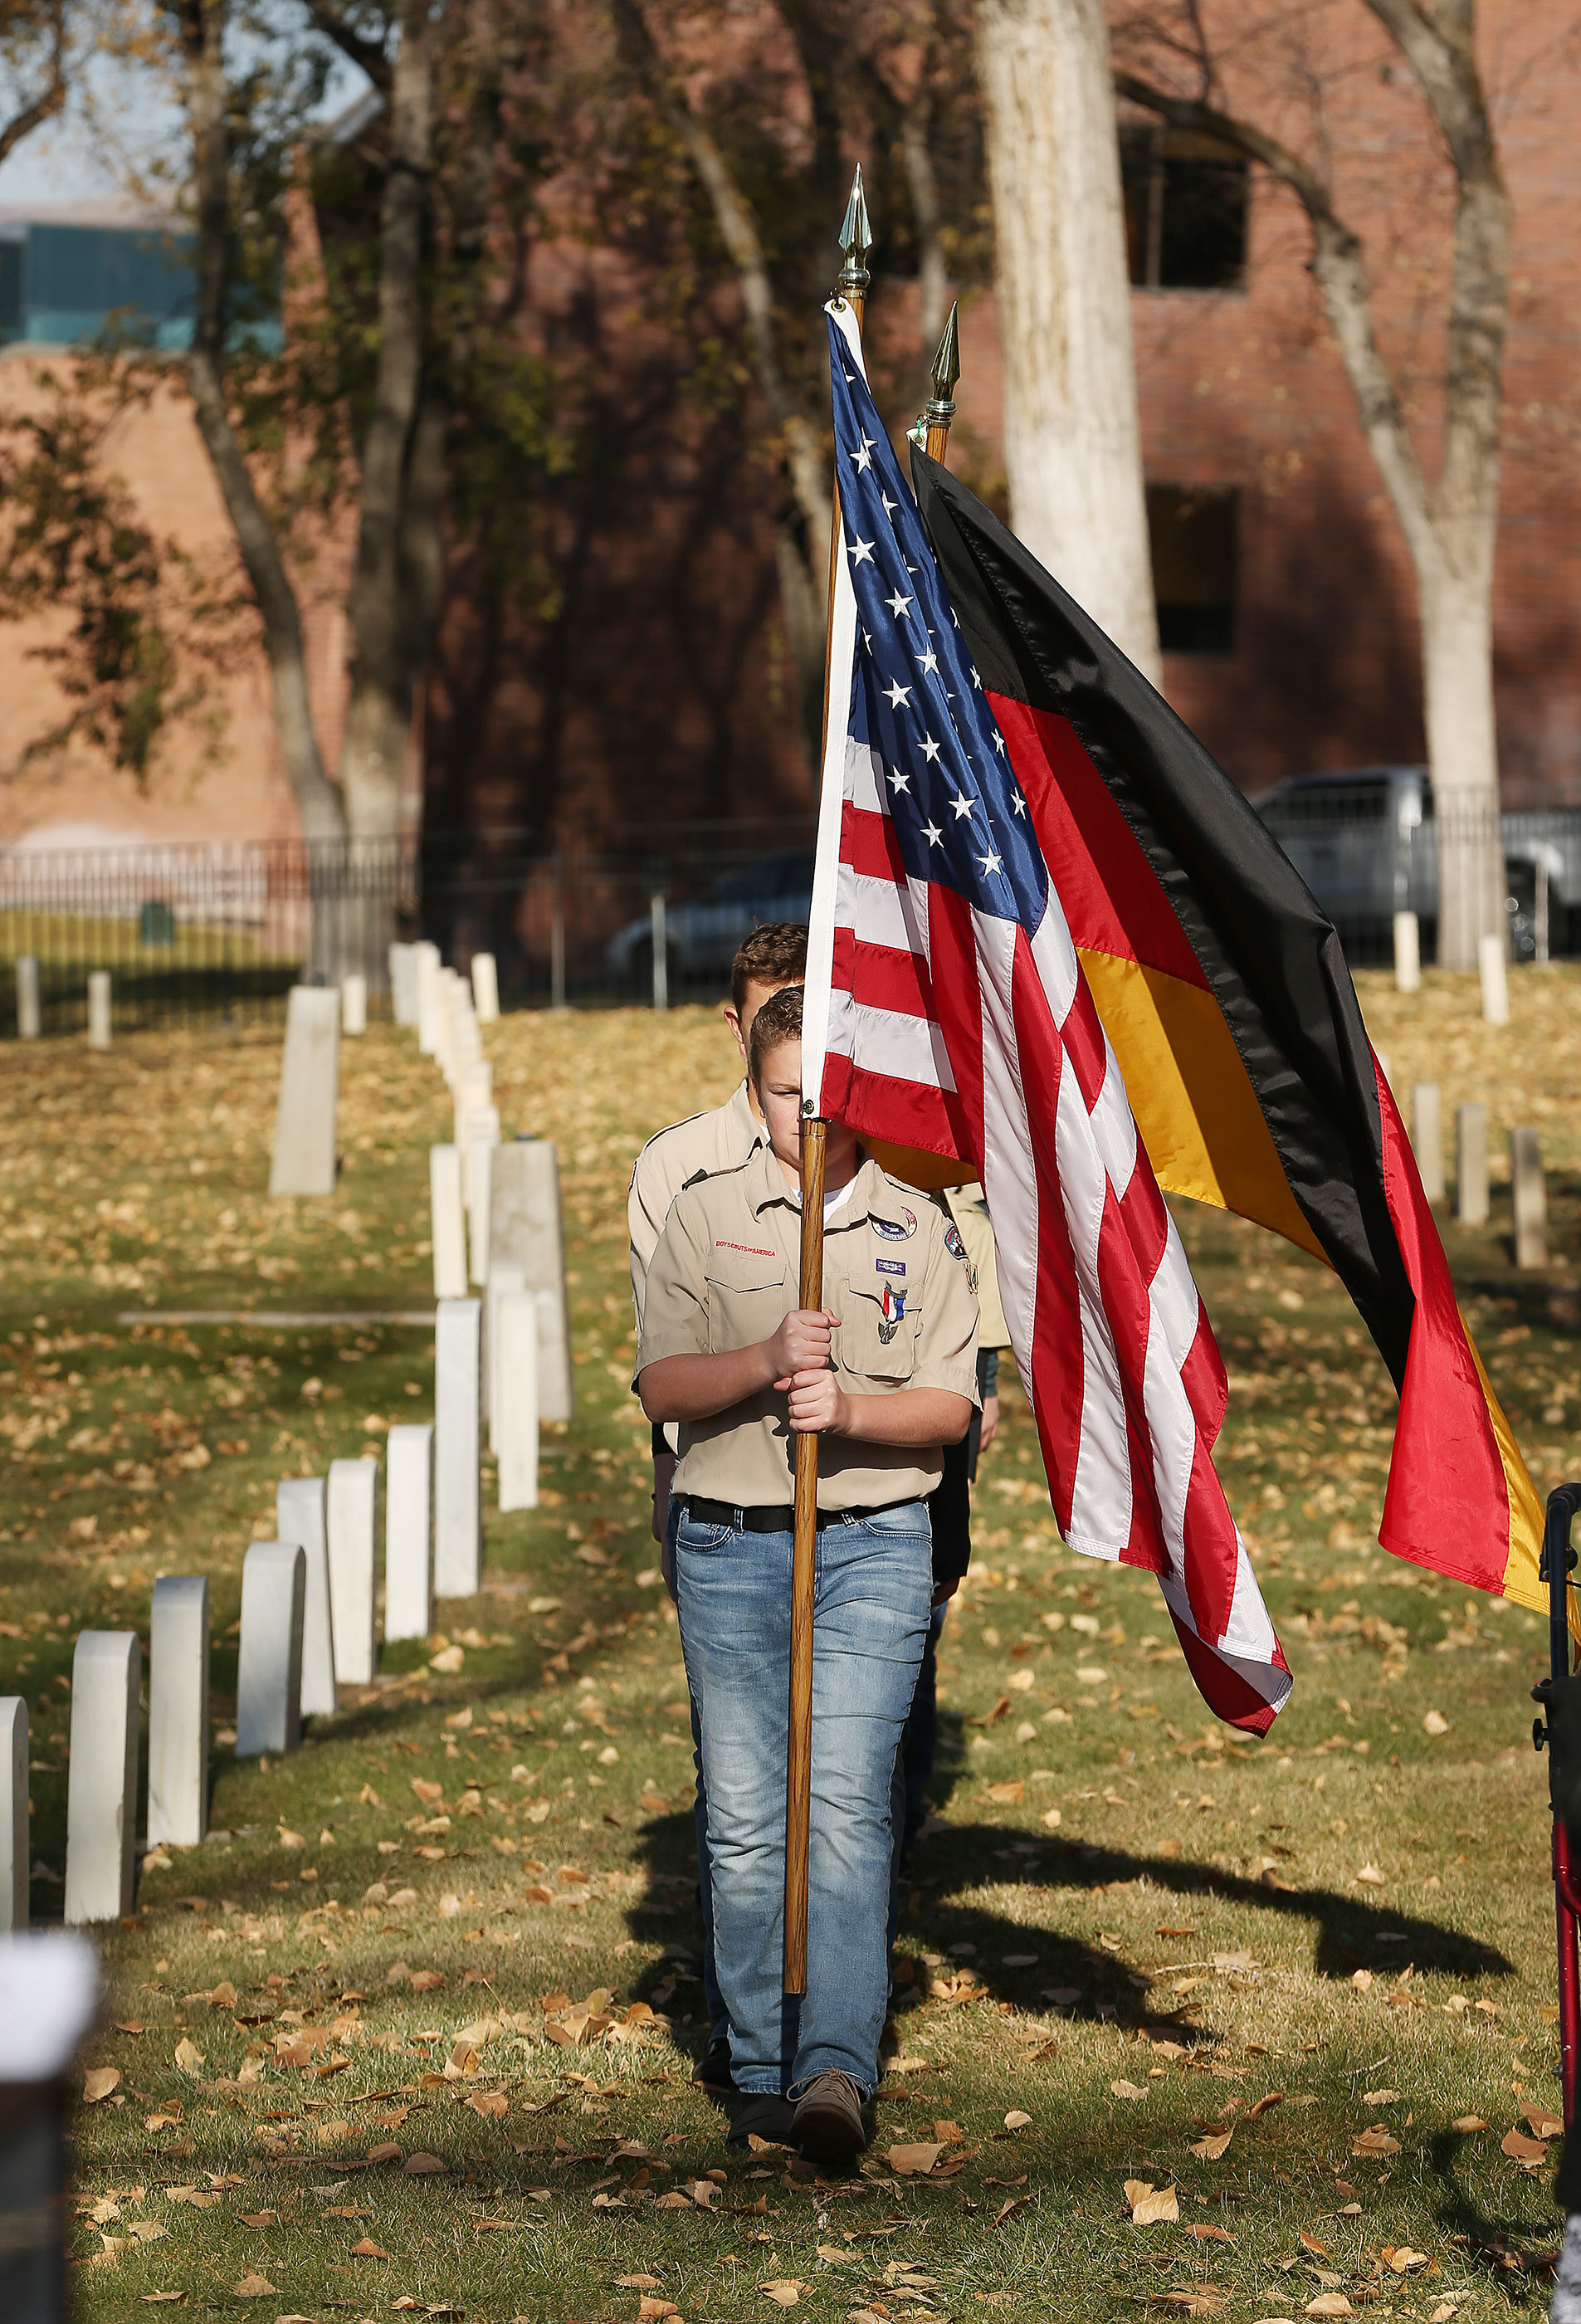 Combined troops of Kaysville Boy Scouts carry the American flag and German flag during the German Day of Remembrance (Volkstrauertag) at Fort Douglas Military Cemetery in Salt Lake City on Sunday, Nov. 18, 2018.